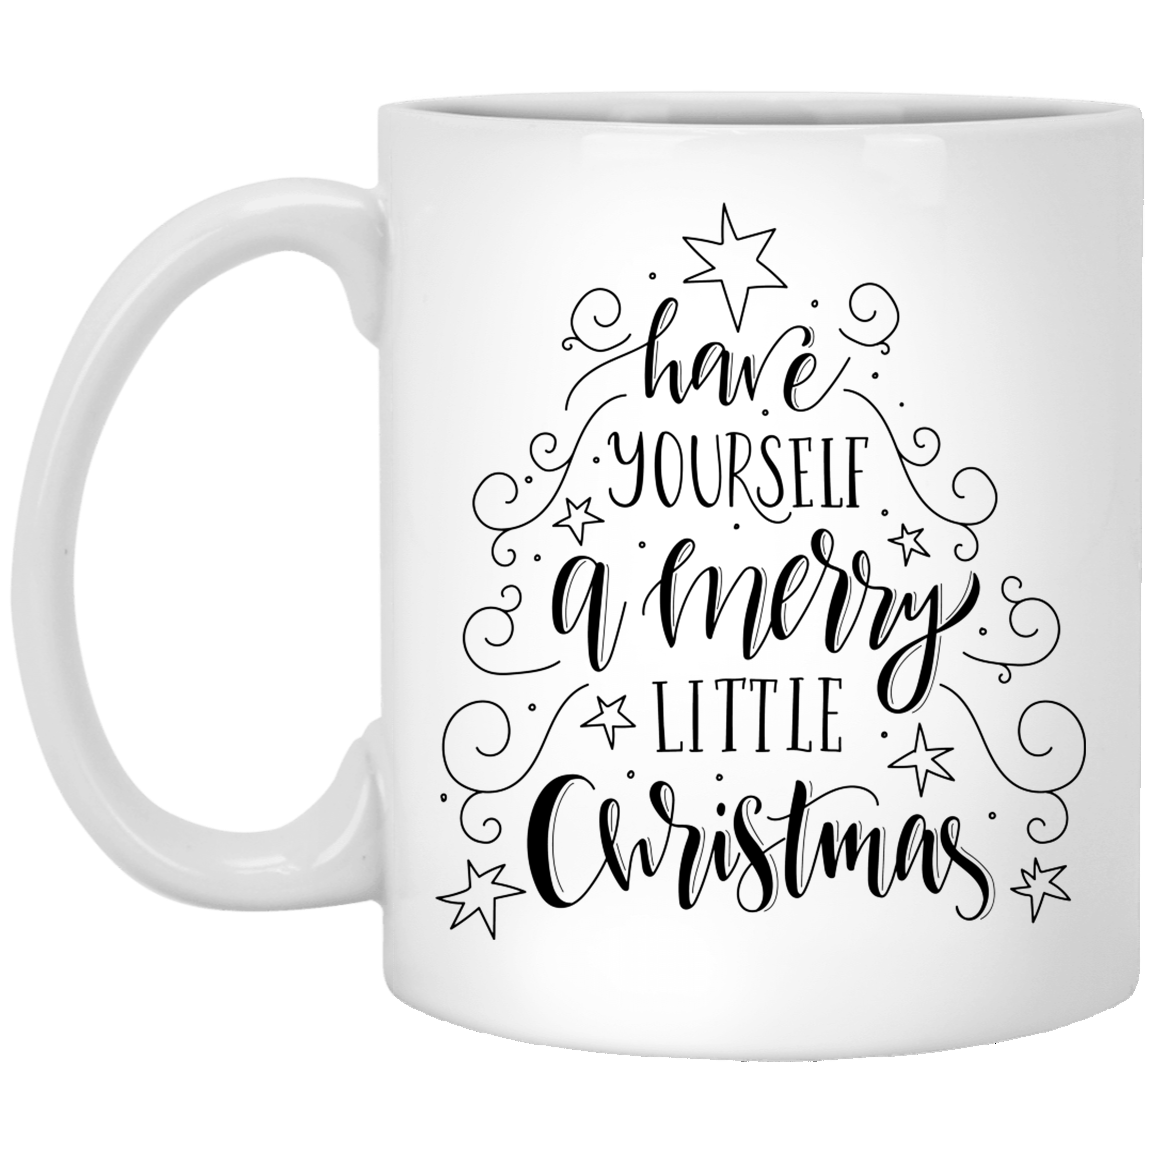 Christmas Coffee Mug Christmas Gift Gift For Friend Best Friends Gift Ceramic Cup BFF Gift Christmas Gifts For Her Custom Coffee Mug